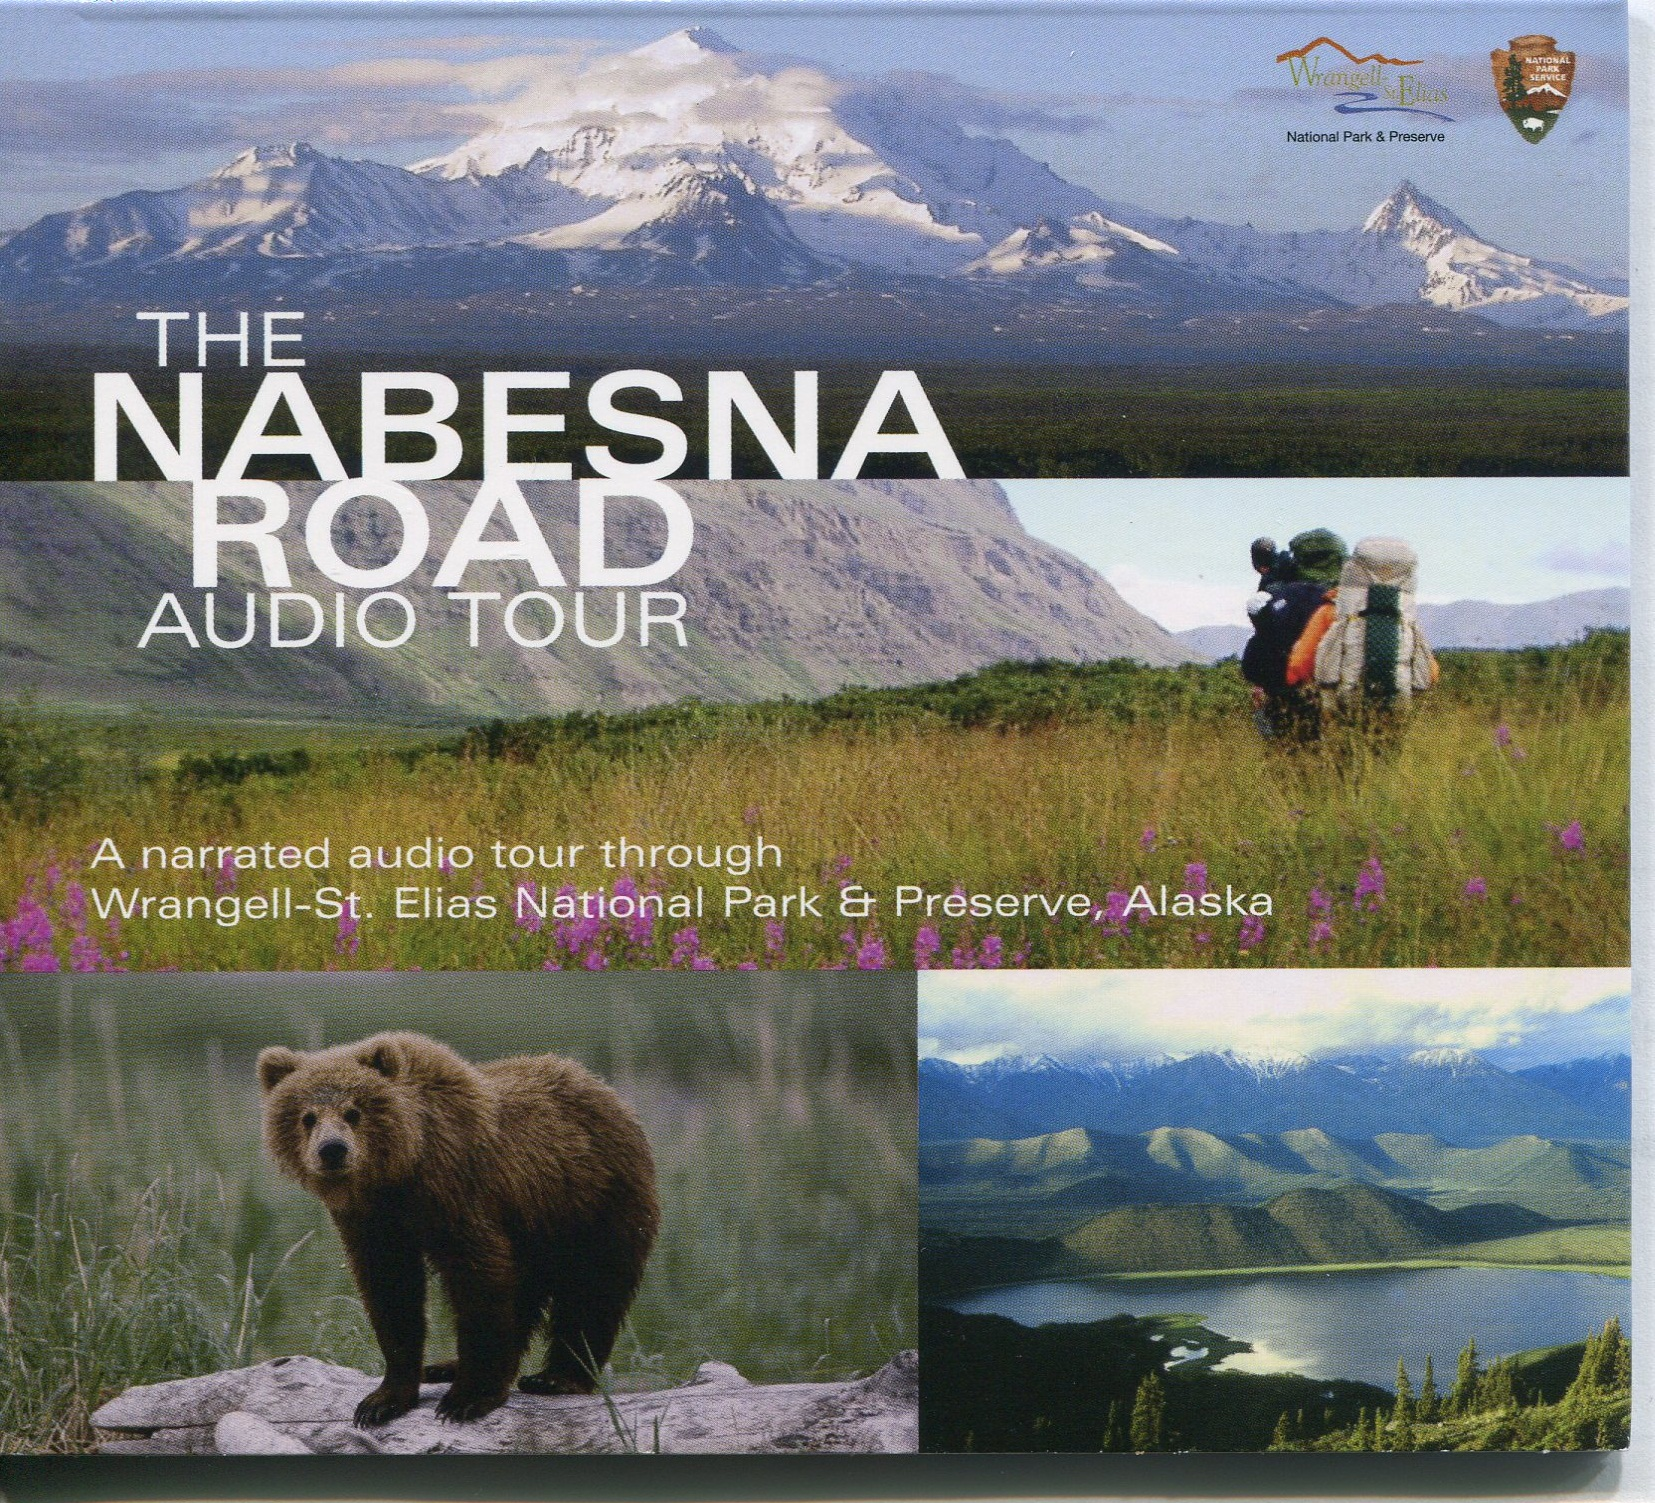 Nabesna Road Audio Tour